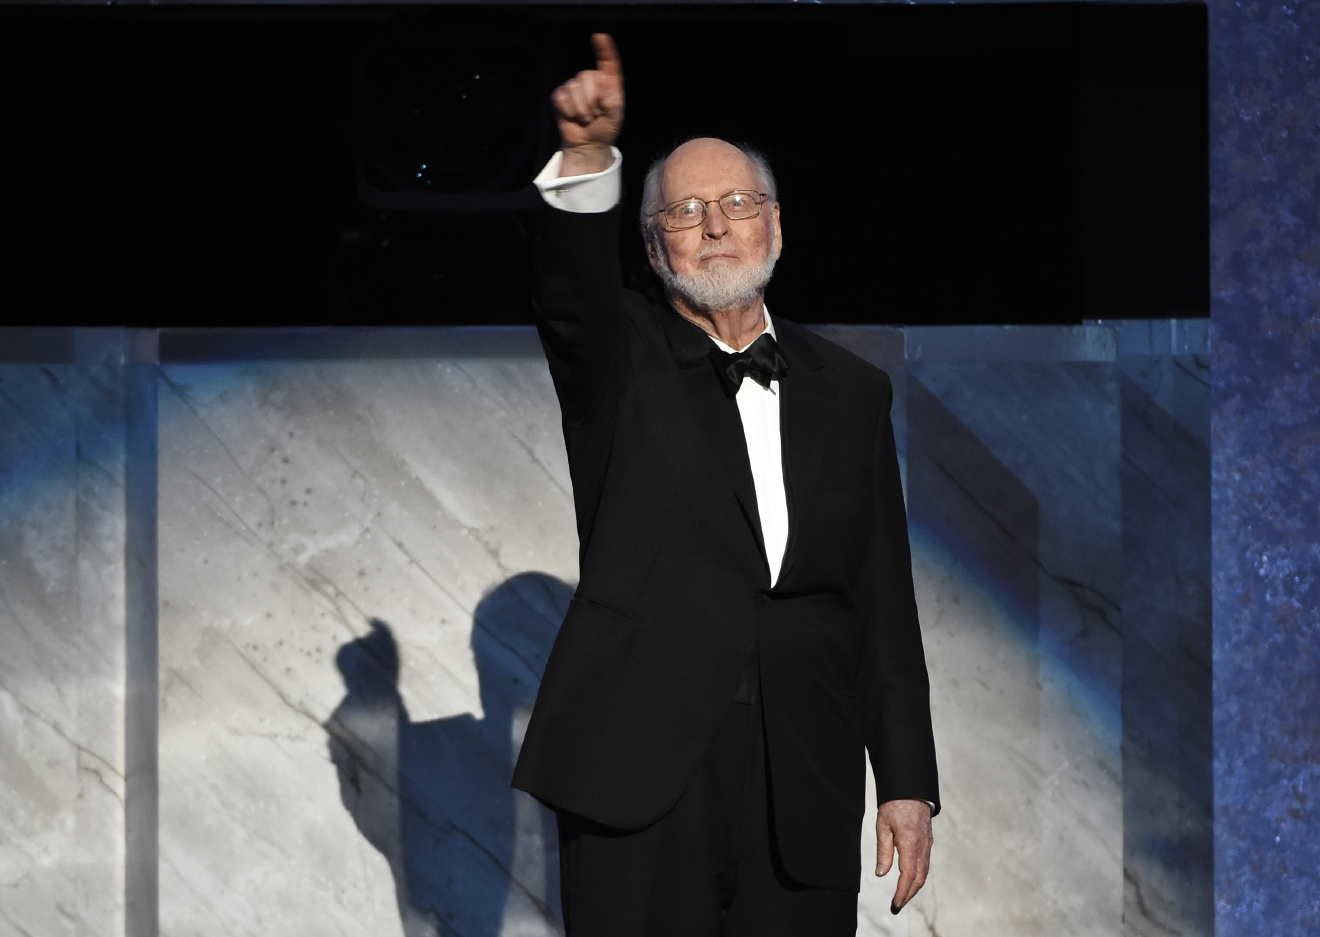 Composer John Williams gestures to the audience during the 2016 AFI Life Achievement Award Gala Tribute to Williams at the Dolby Theatre on Thursday, June 9, 2016, in Los Angeles. (Photo by Chris Pizzello/Invision/AP)